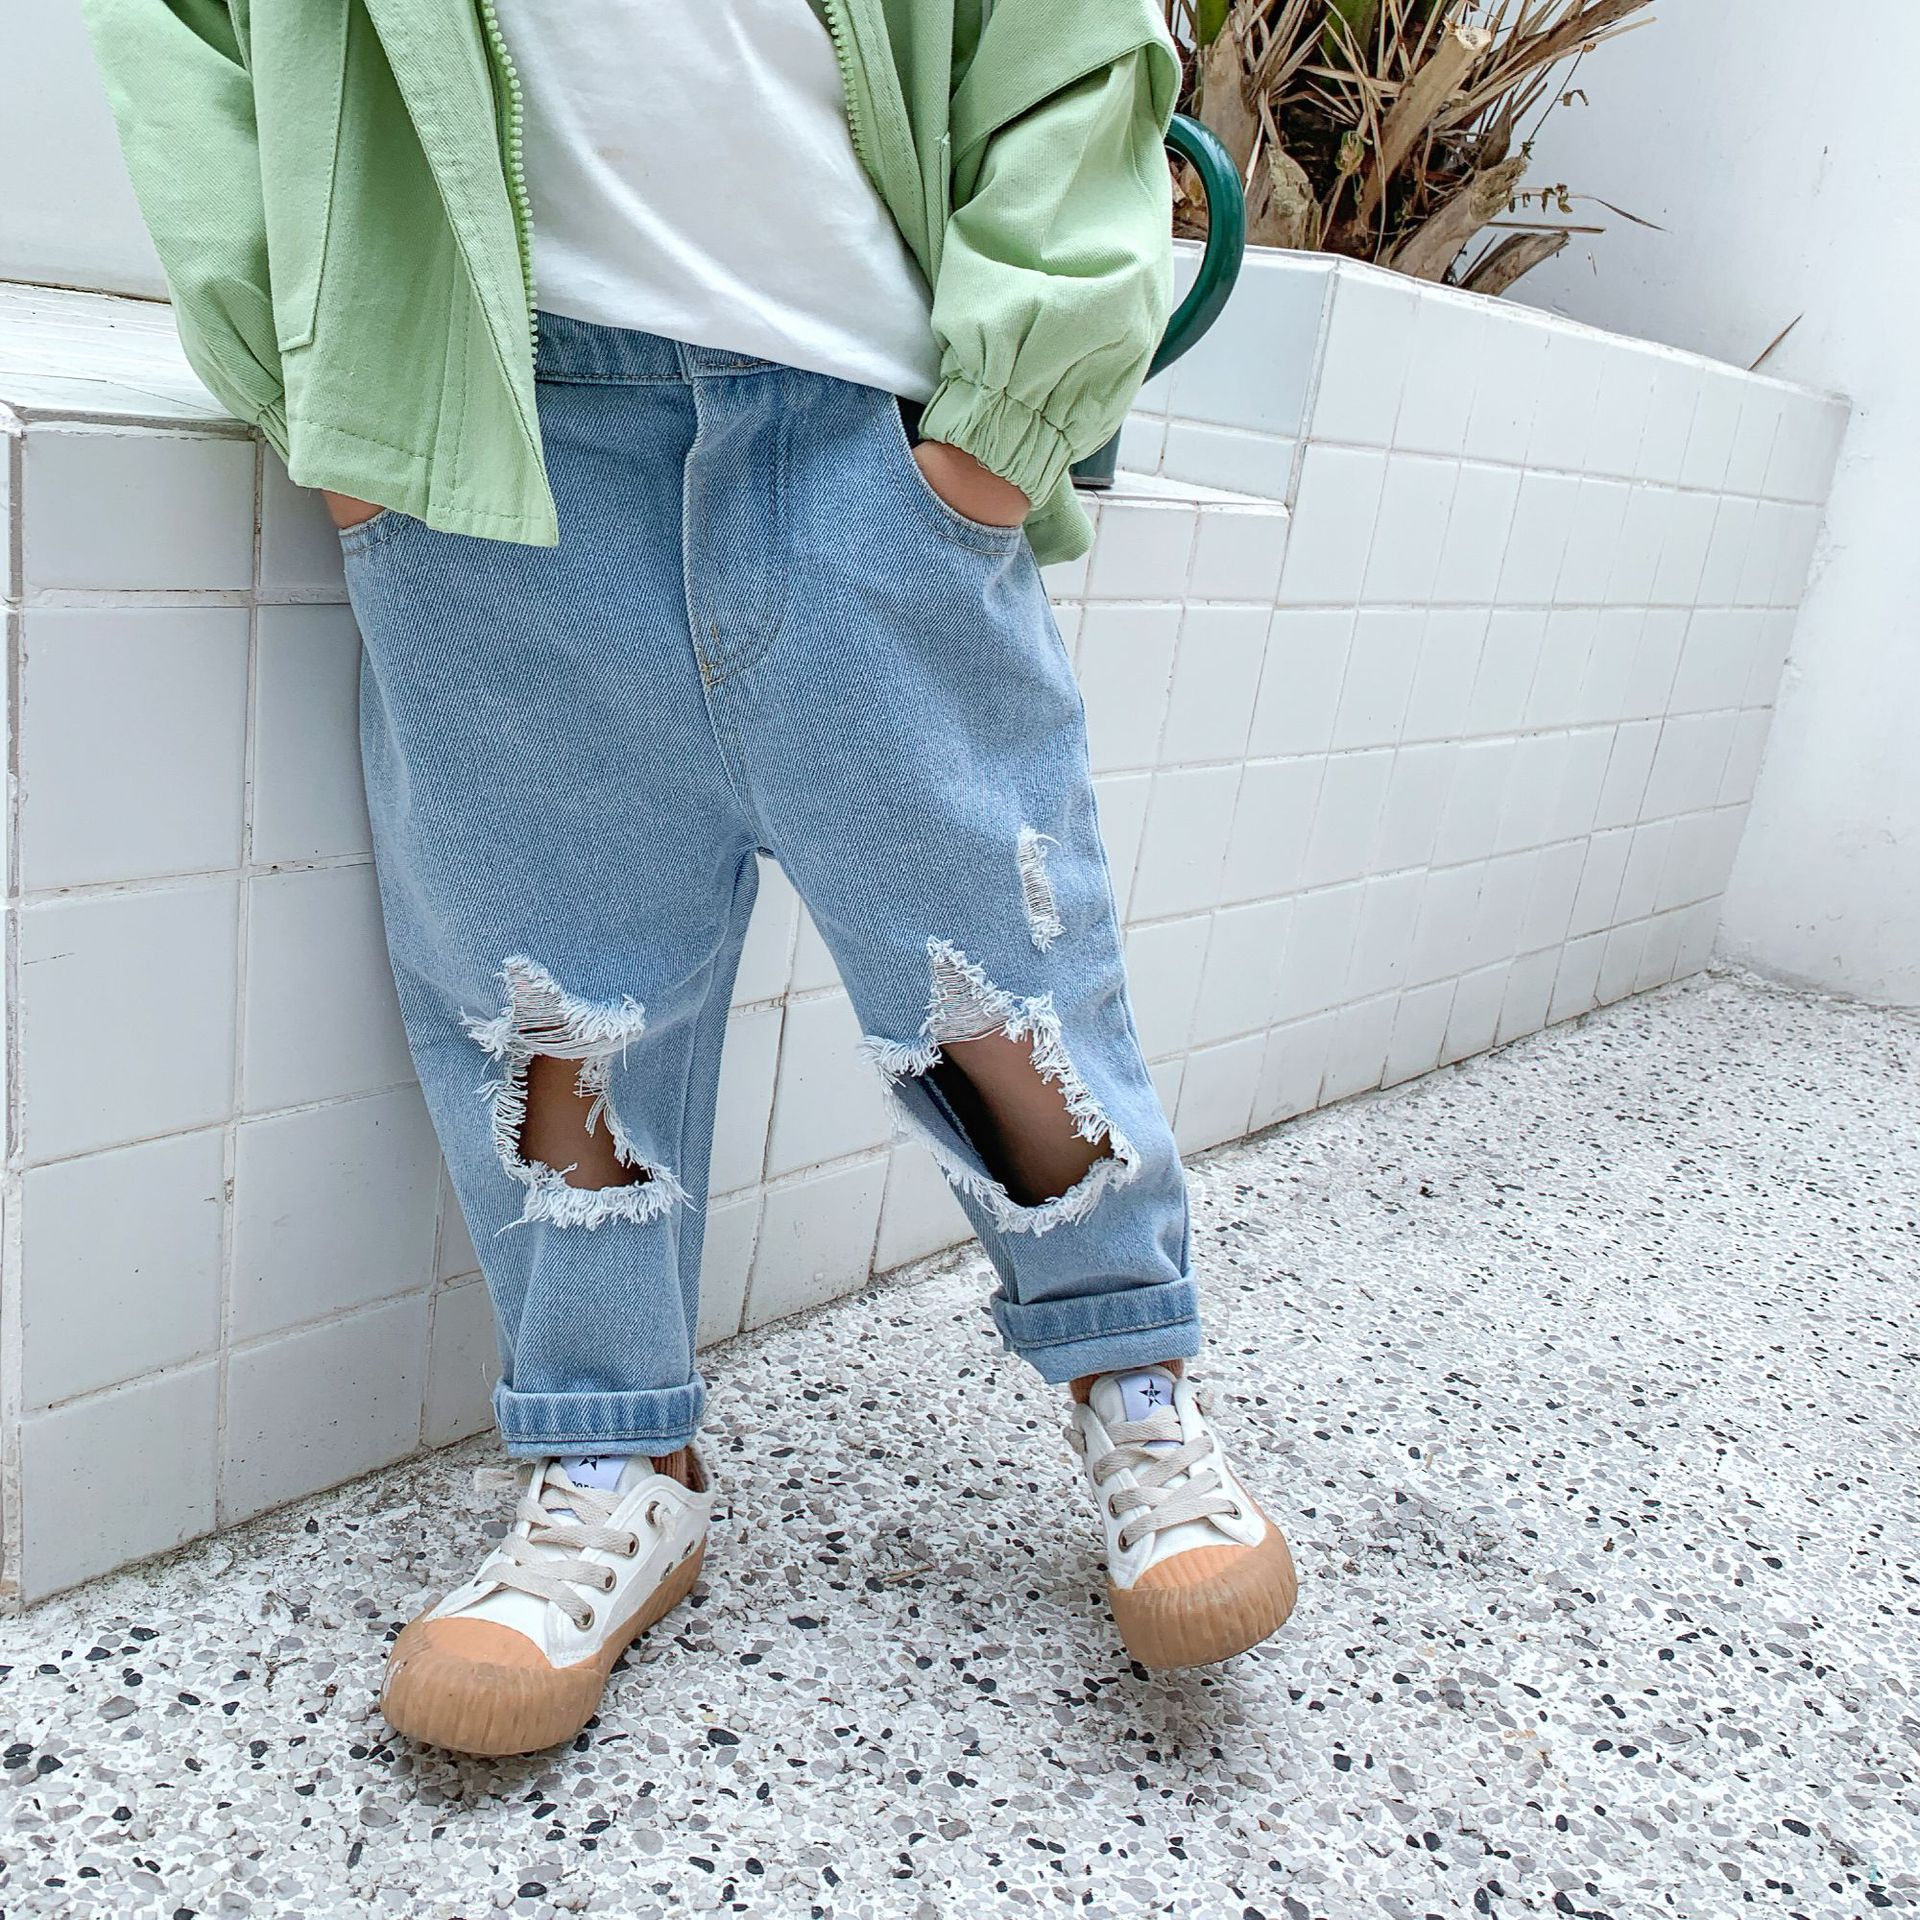 3228 Children's Pants 2020 Spring New Boys And Girls' Korean Wide Leg Pants With Hole Pocket Jeans Pants